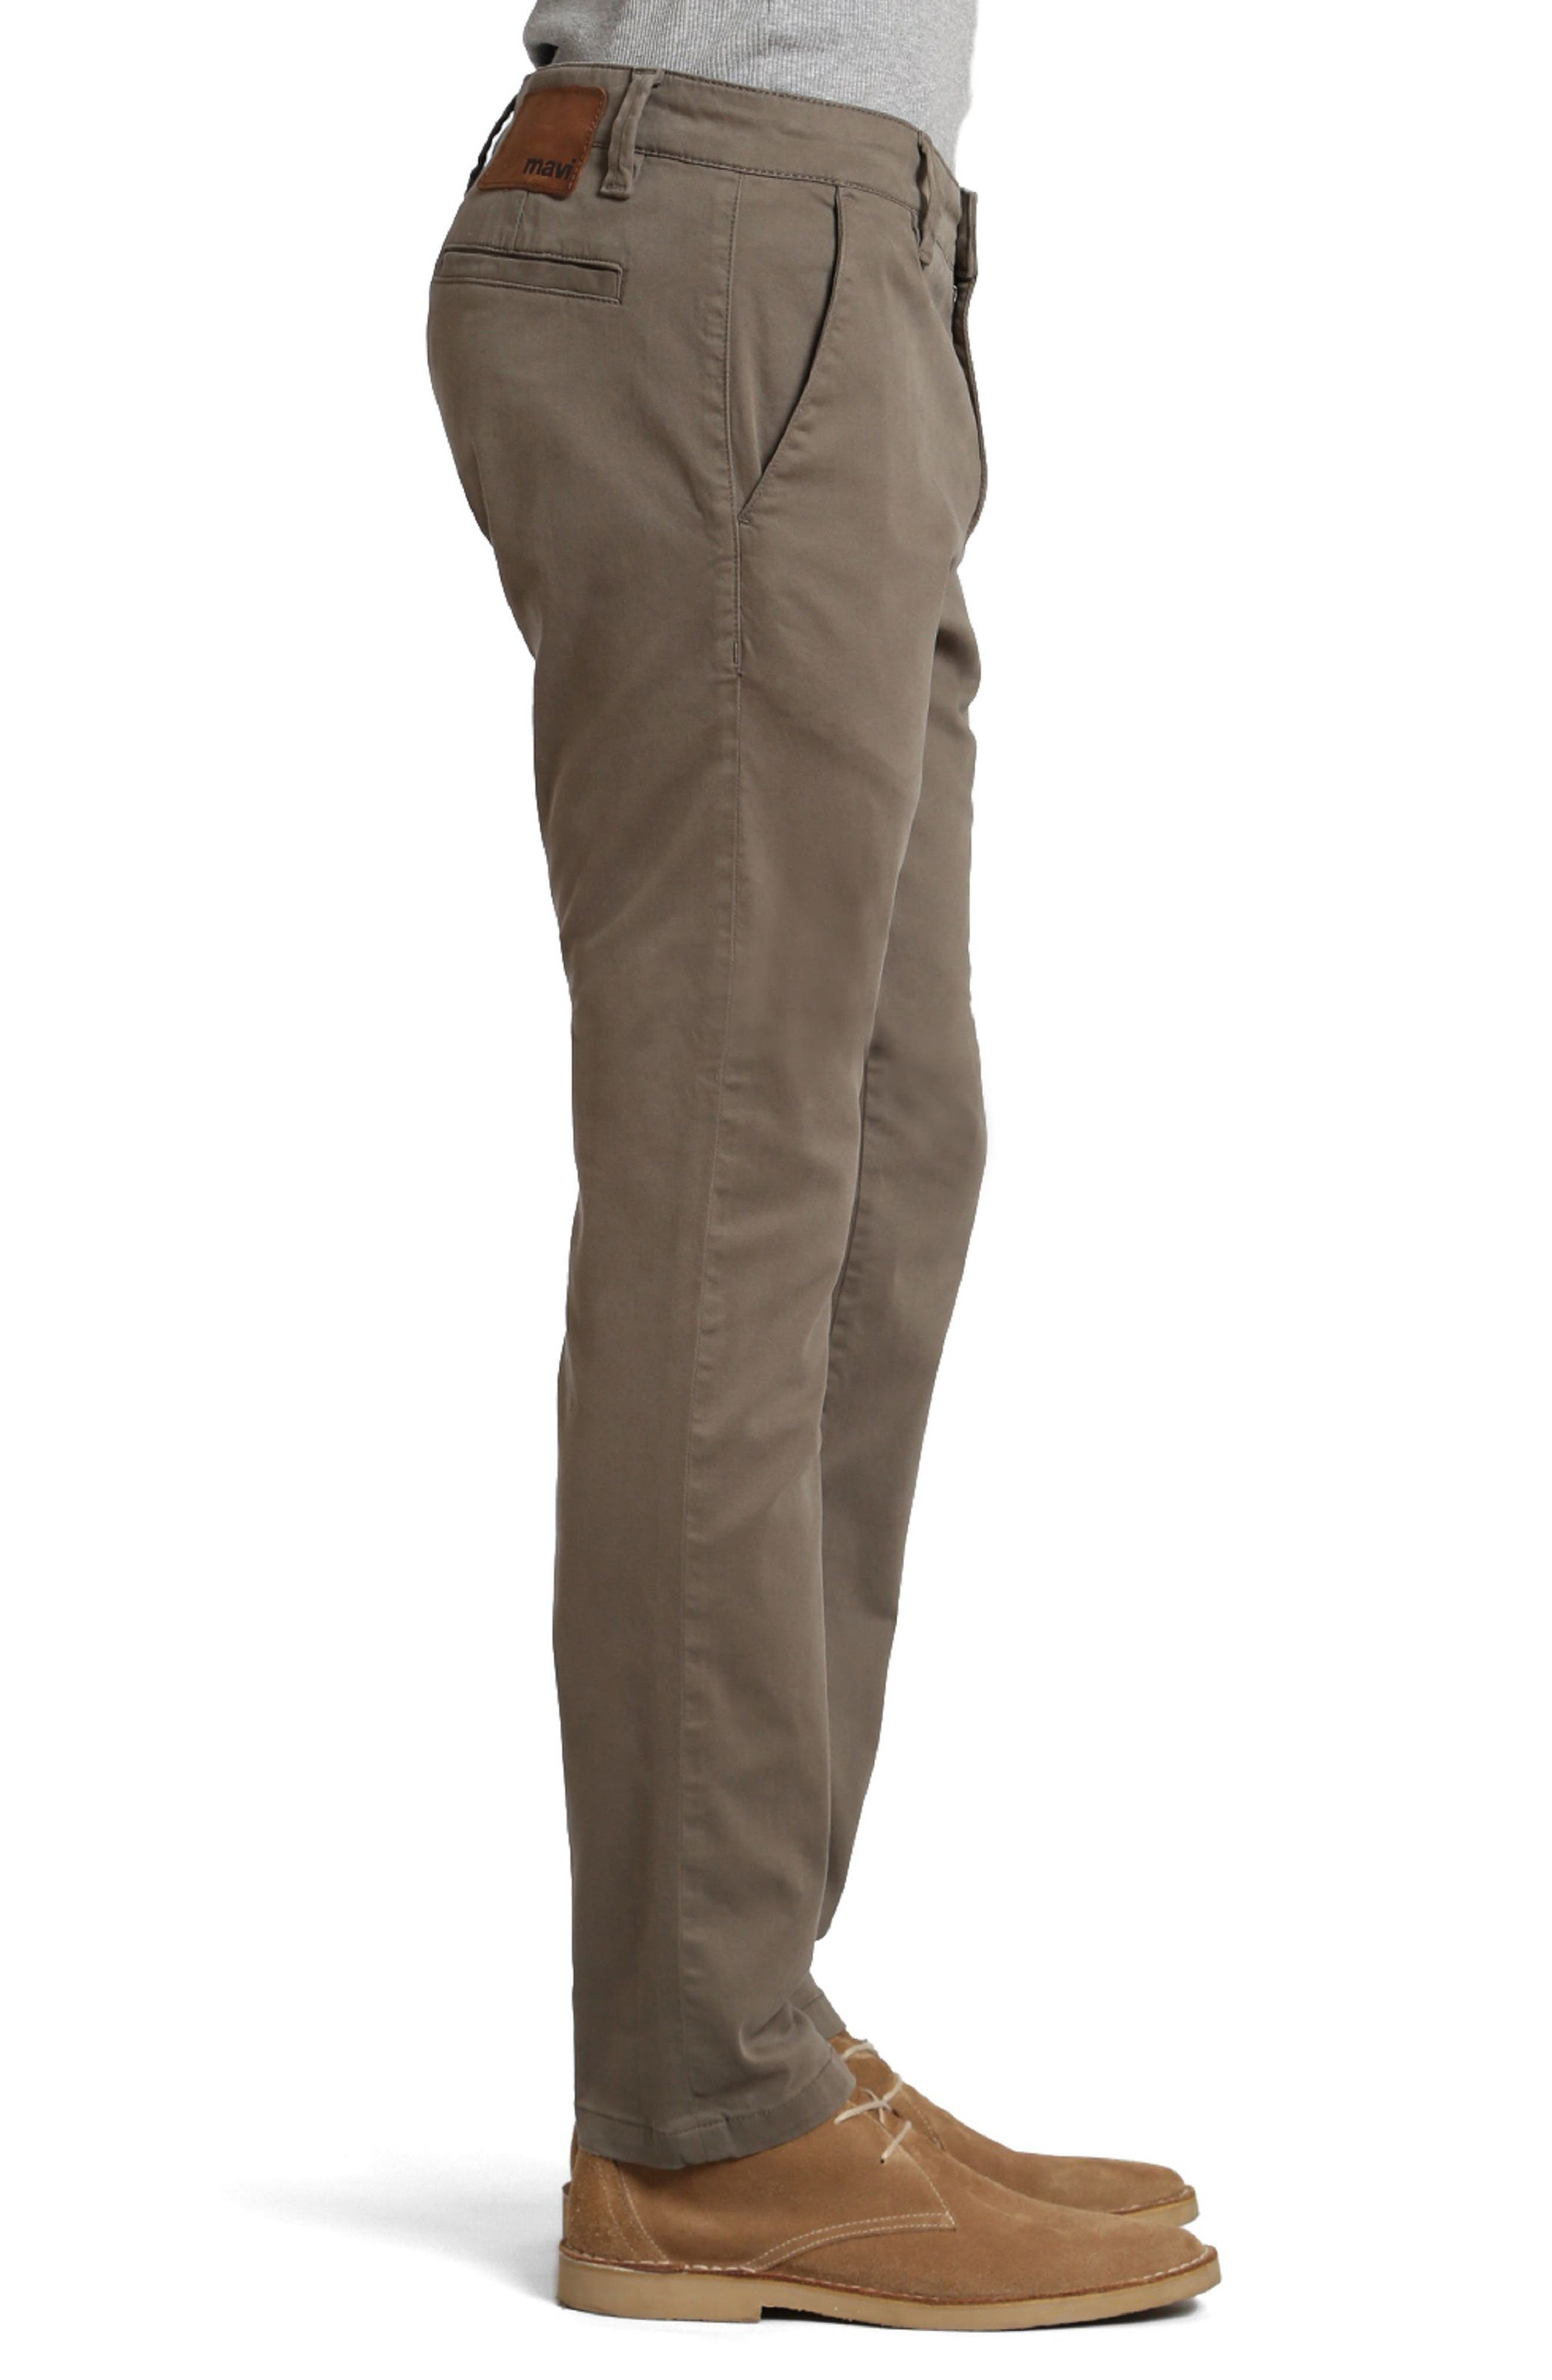 Johnny Twill Pants,                             Alternate thumbnail 3, color,                             Dusty Olive Twill